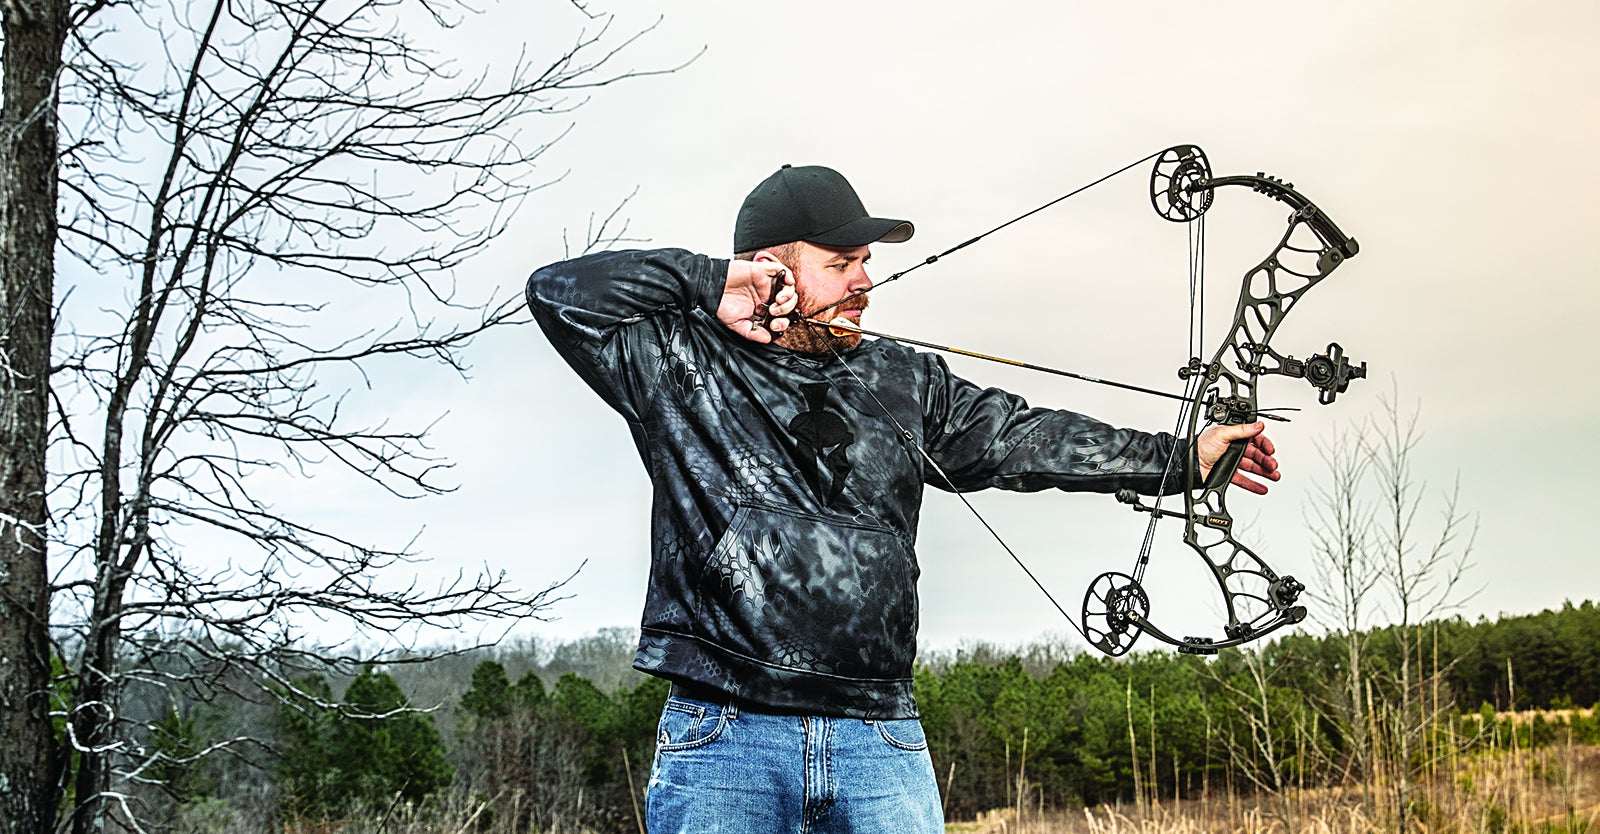 Bowhunter drawing back on a compound bow.